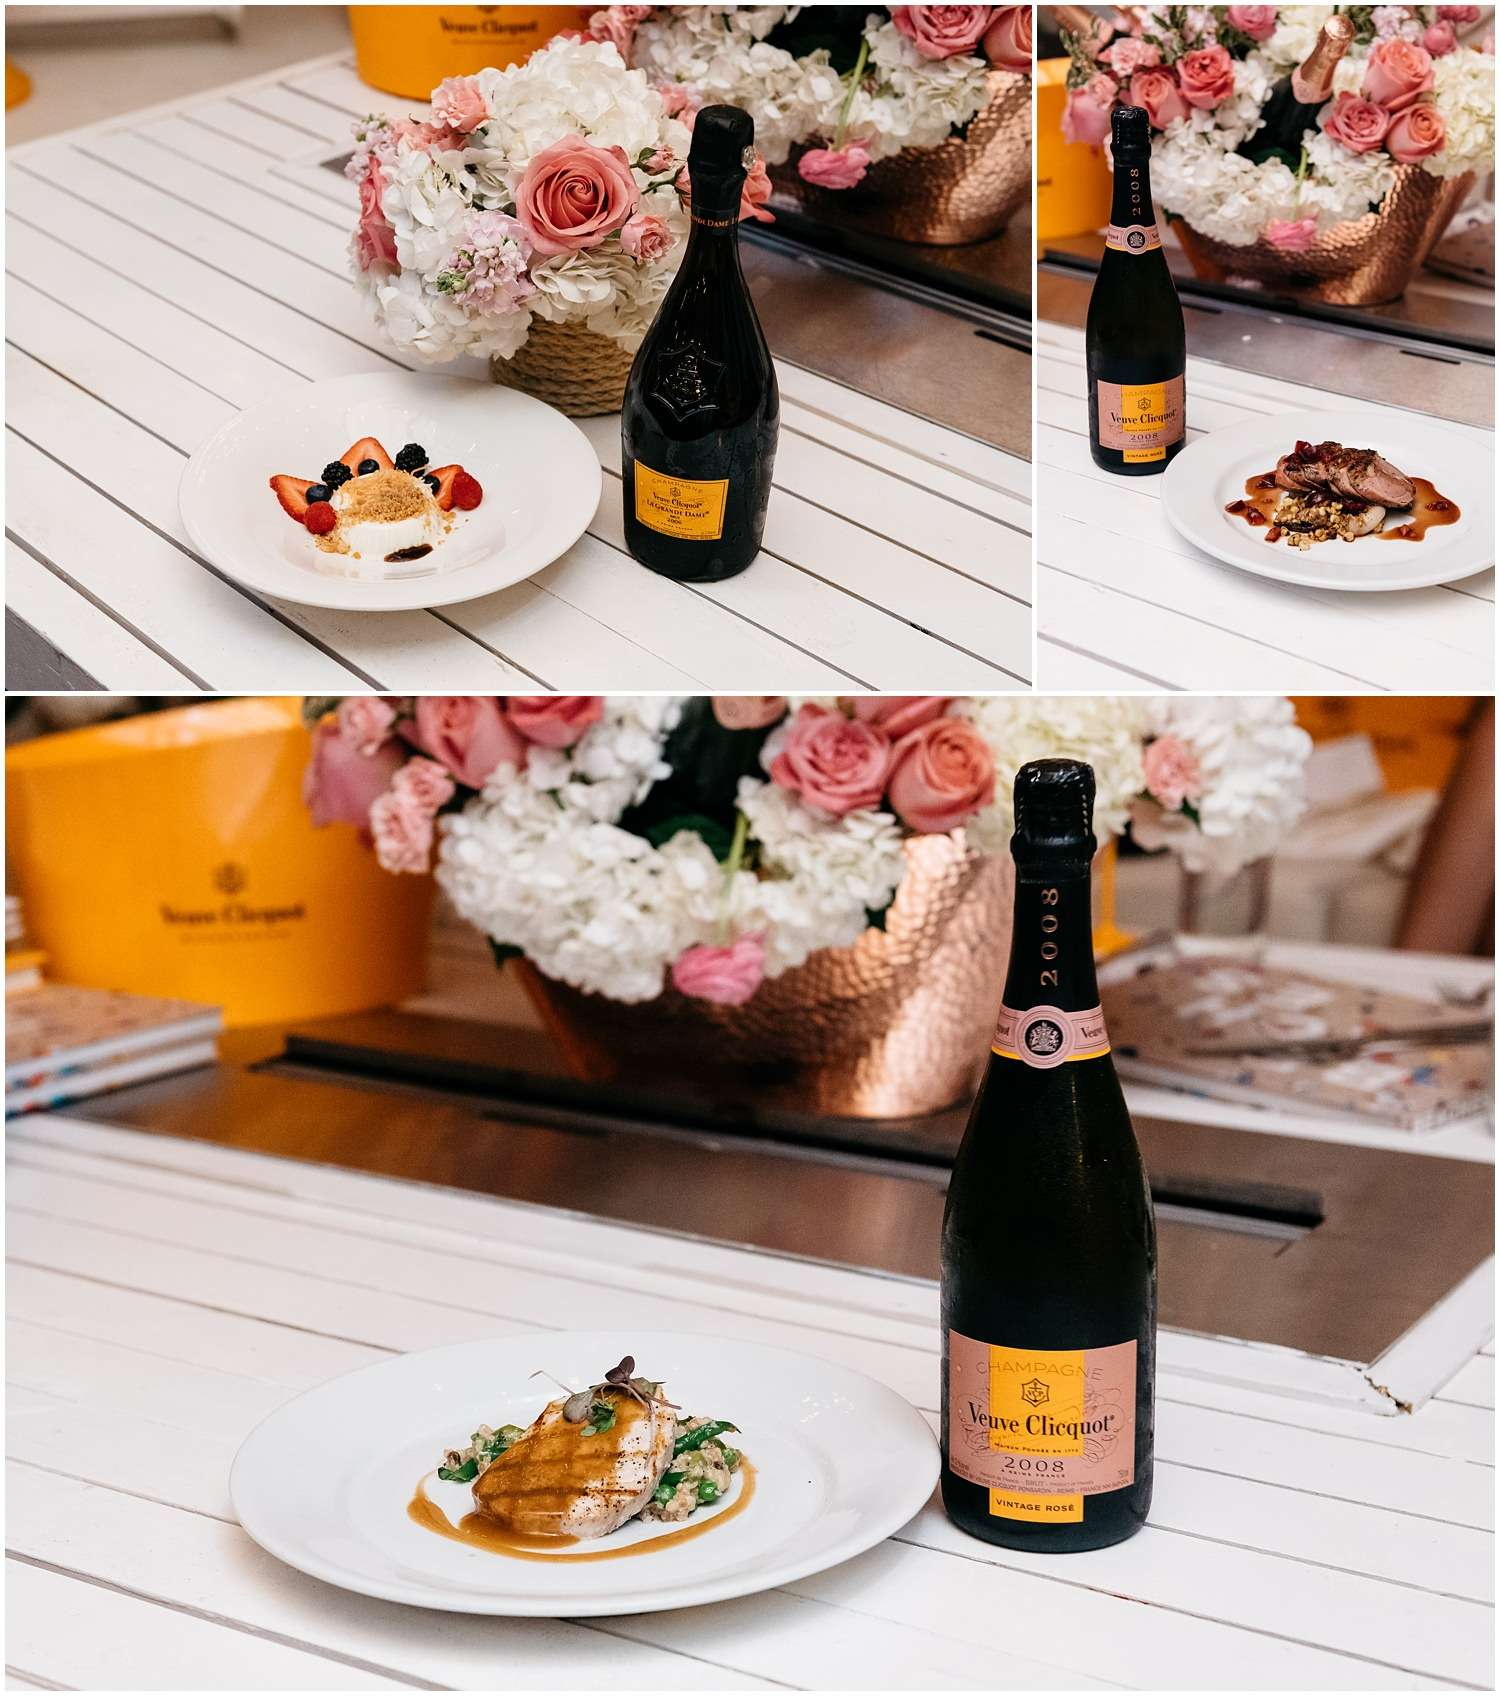 Veuve Clicquot, ClicquotJourney, influencer, blogger, chicago blogger, food blogger, event, Hampton Social, Chicago, Ilinois, event photographer, influencer event, summer, nautical, champagne, rose, rose all day, photographer